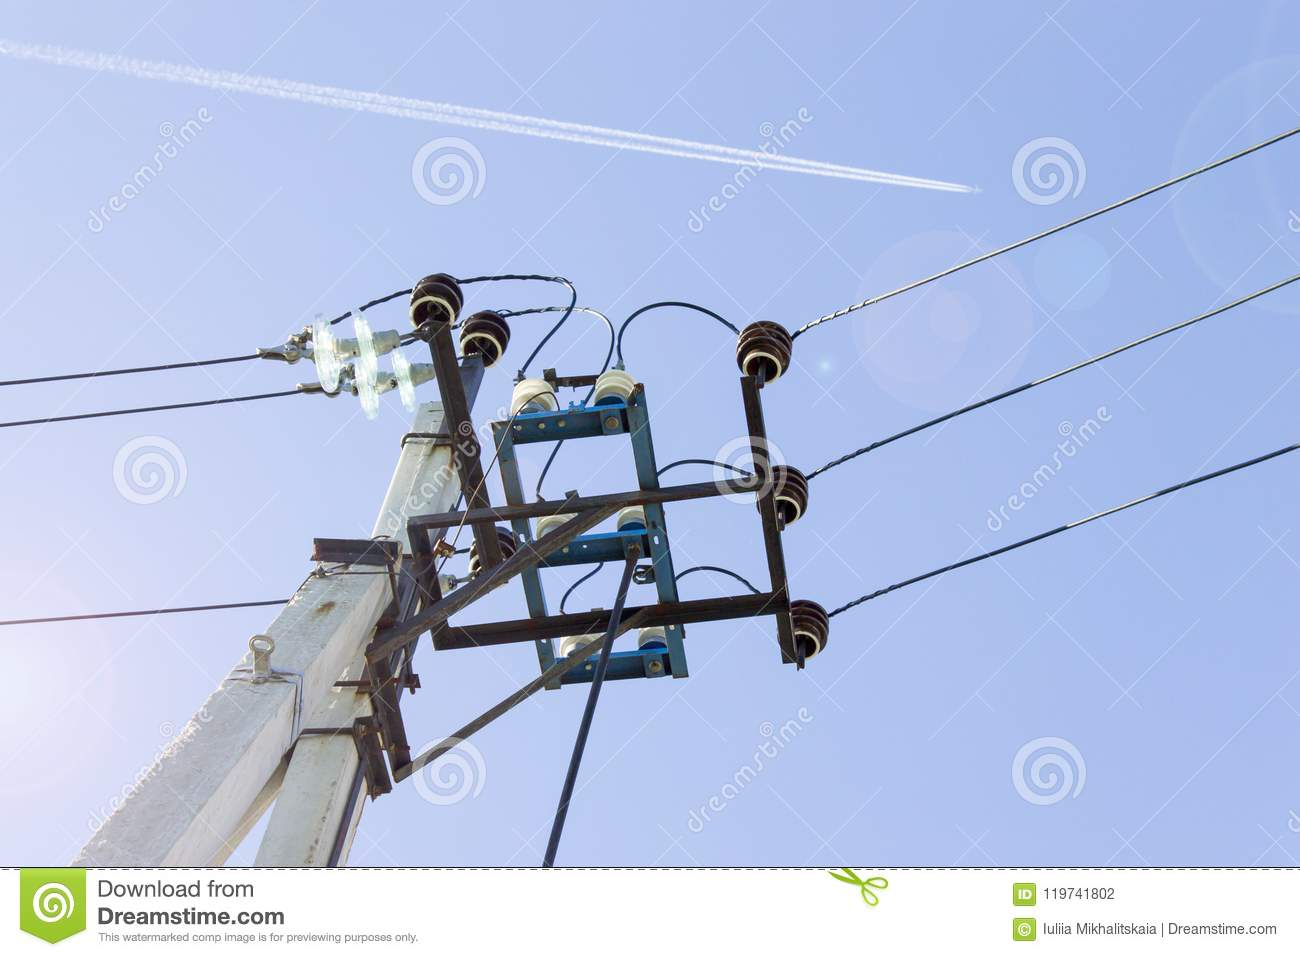 hight resolution of electricity transmission pole high voltage equipment power lines and wires against blue sky